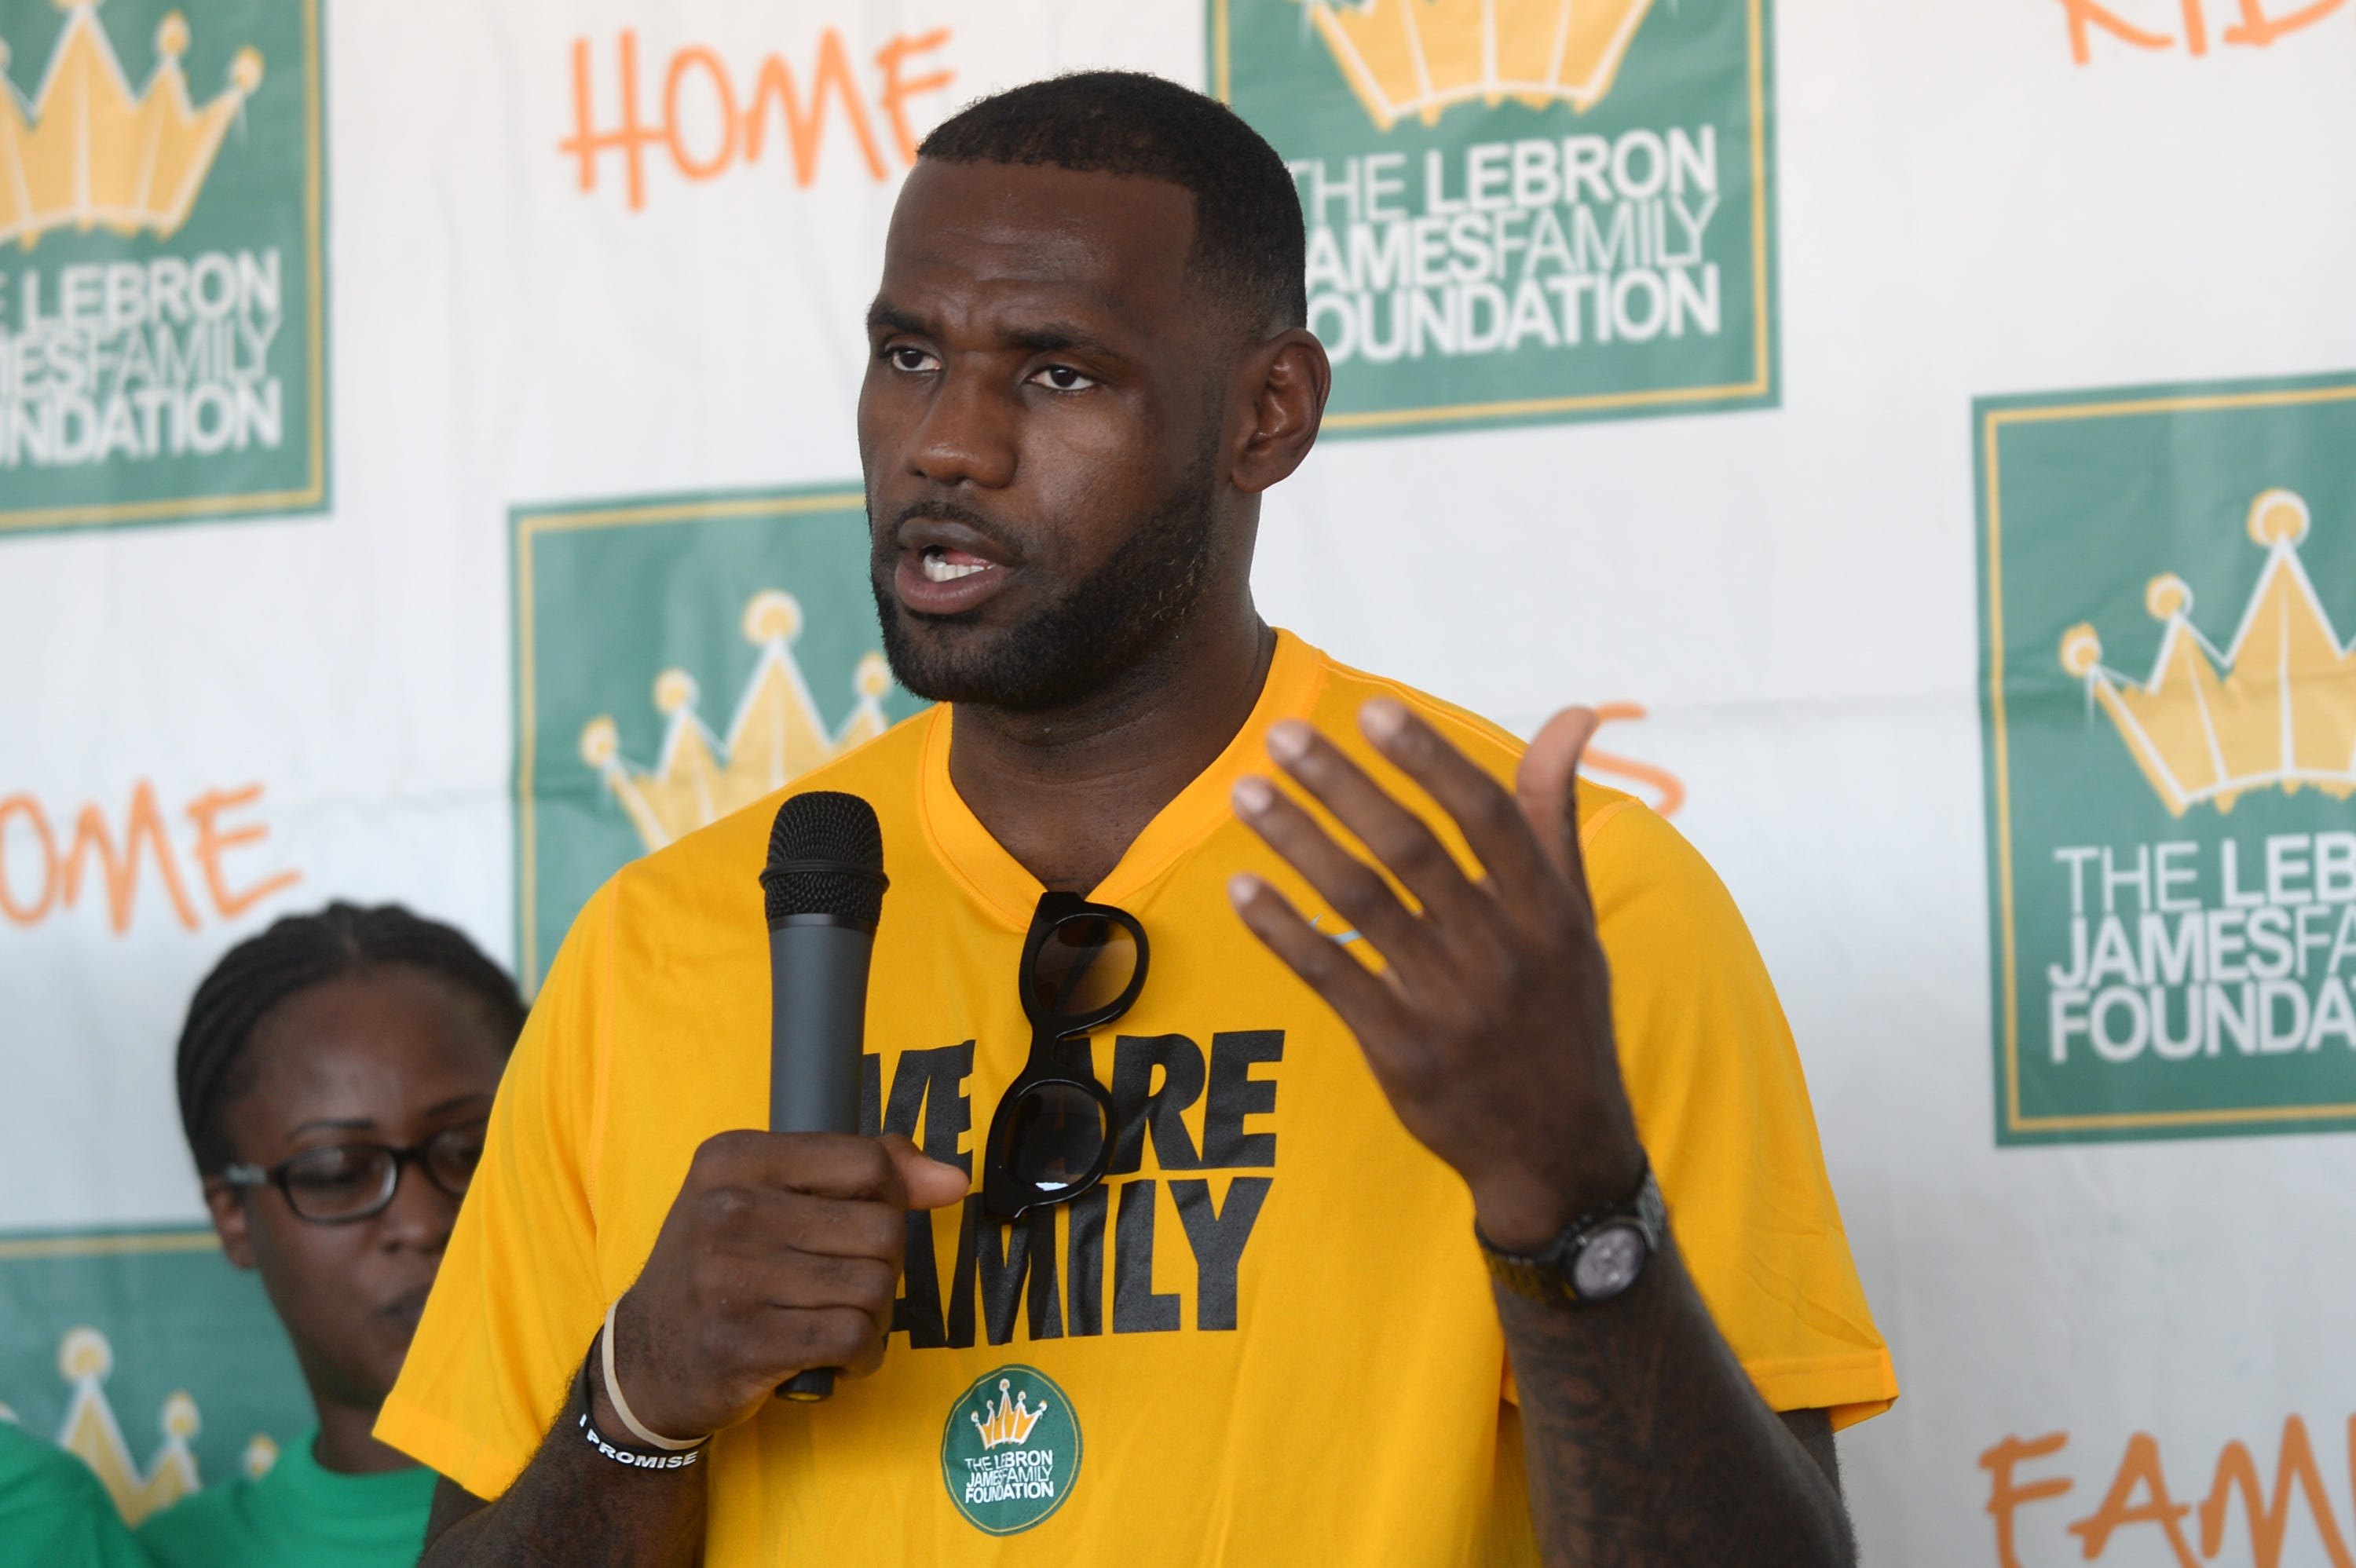 What if LeBron James had just shut up and dribbled?